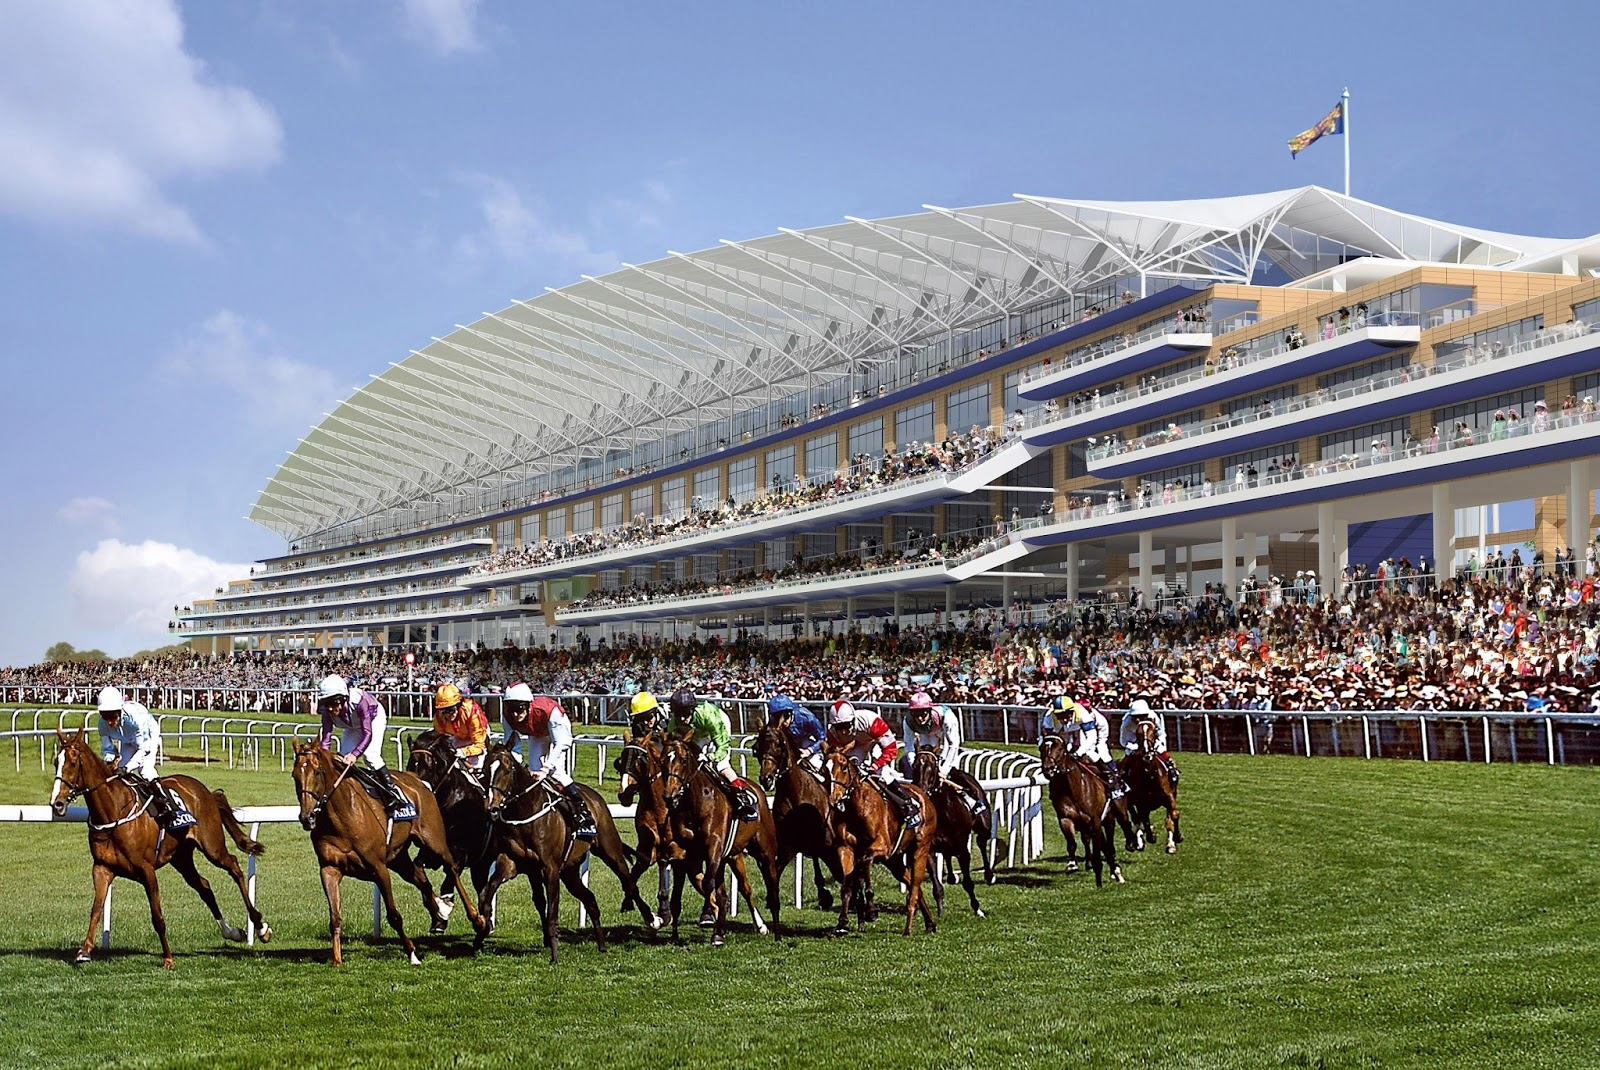 The Royal Ascot 2019